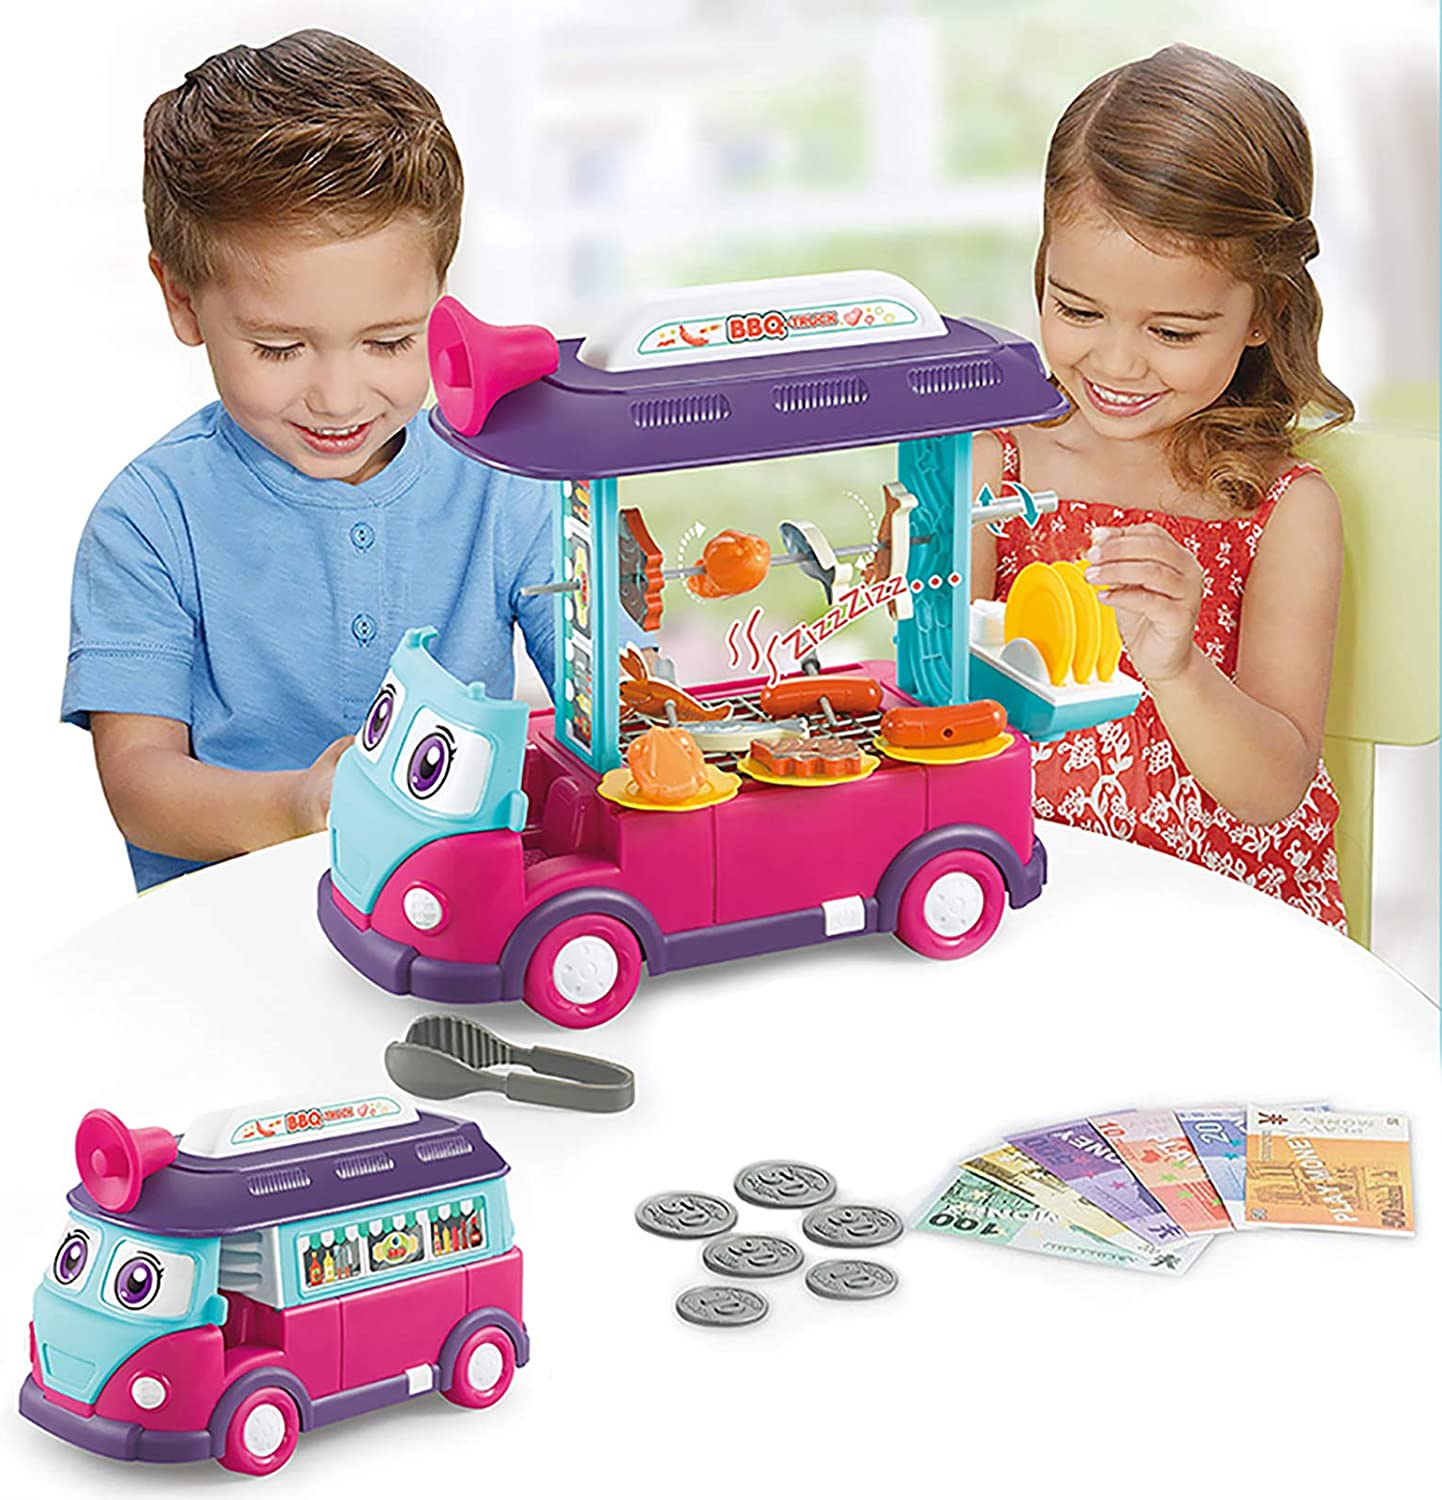 EylbKey BBQ Toy Cart Food Cart Play Set for Kids, Pretend Play Food Truck Set with Light and Sounds for Girls and Boys - Blue Red